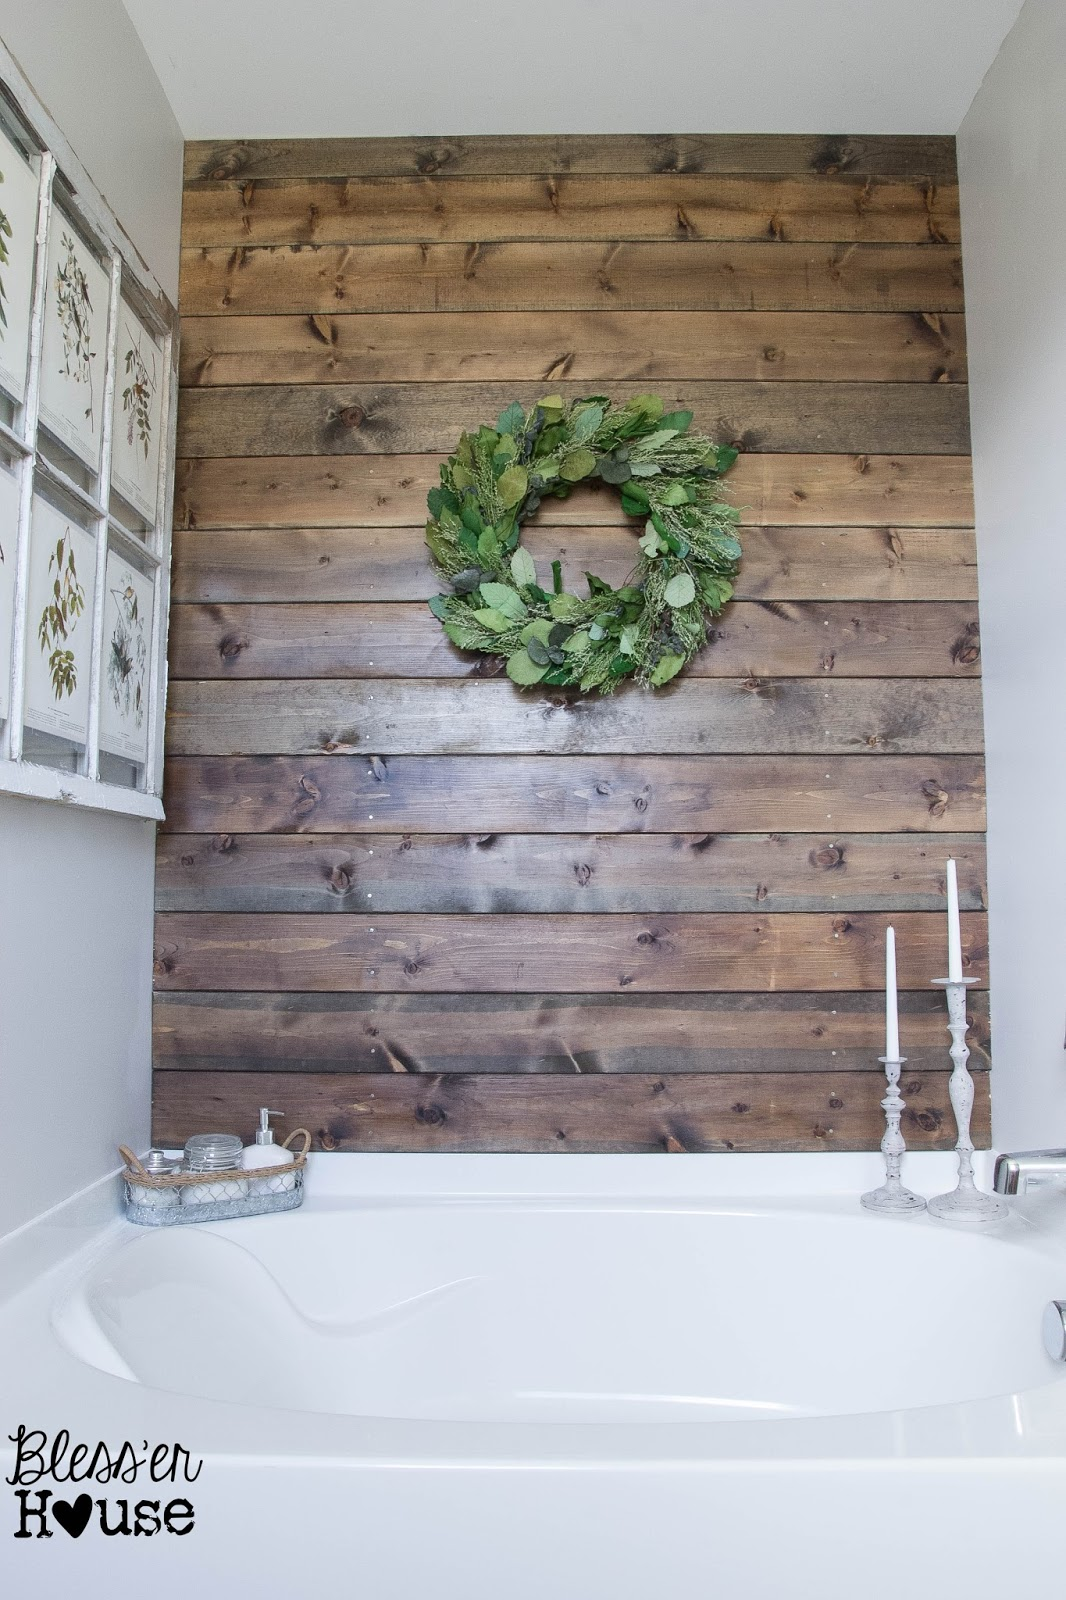 Bless'er House | How to Install a Plank Wall in a Bathroom